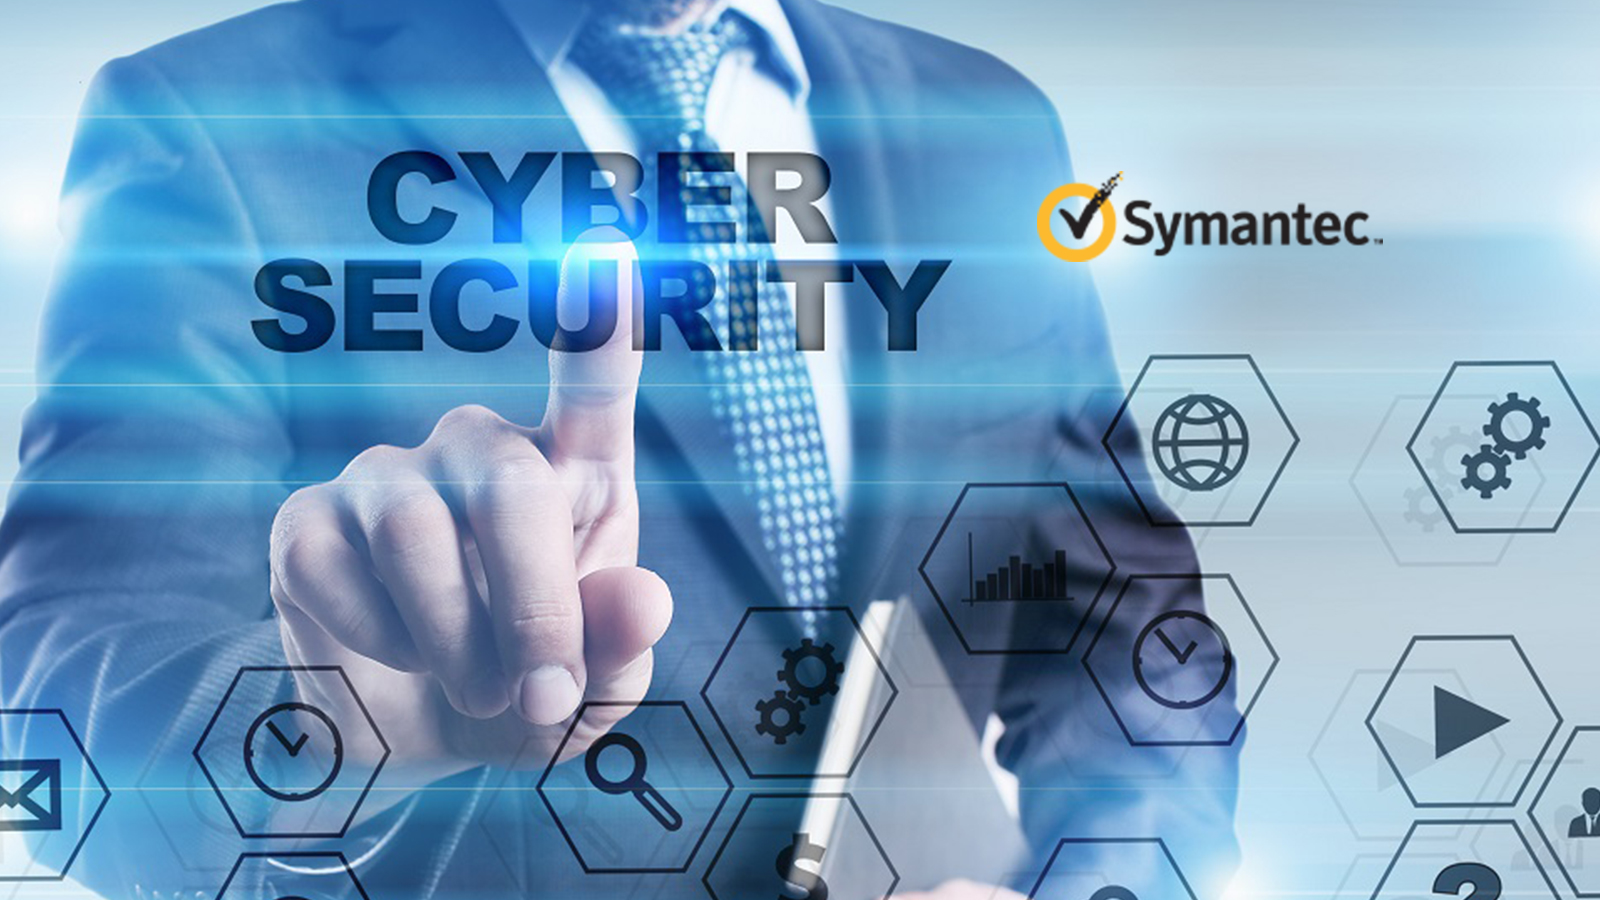 Symantec Unveils Industry's First Neural Network to Protect